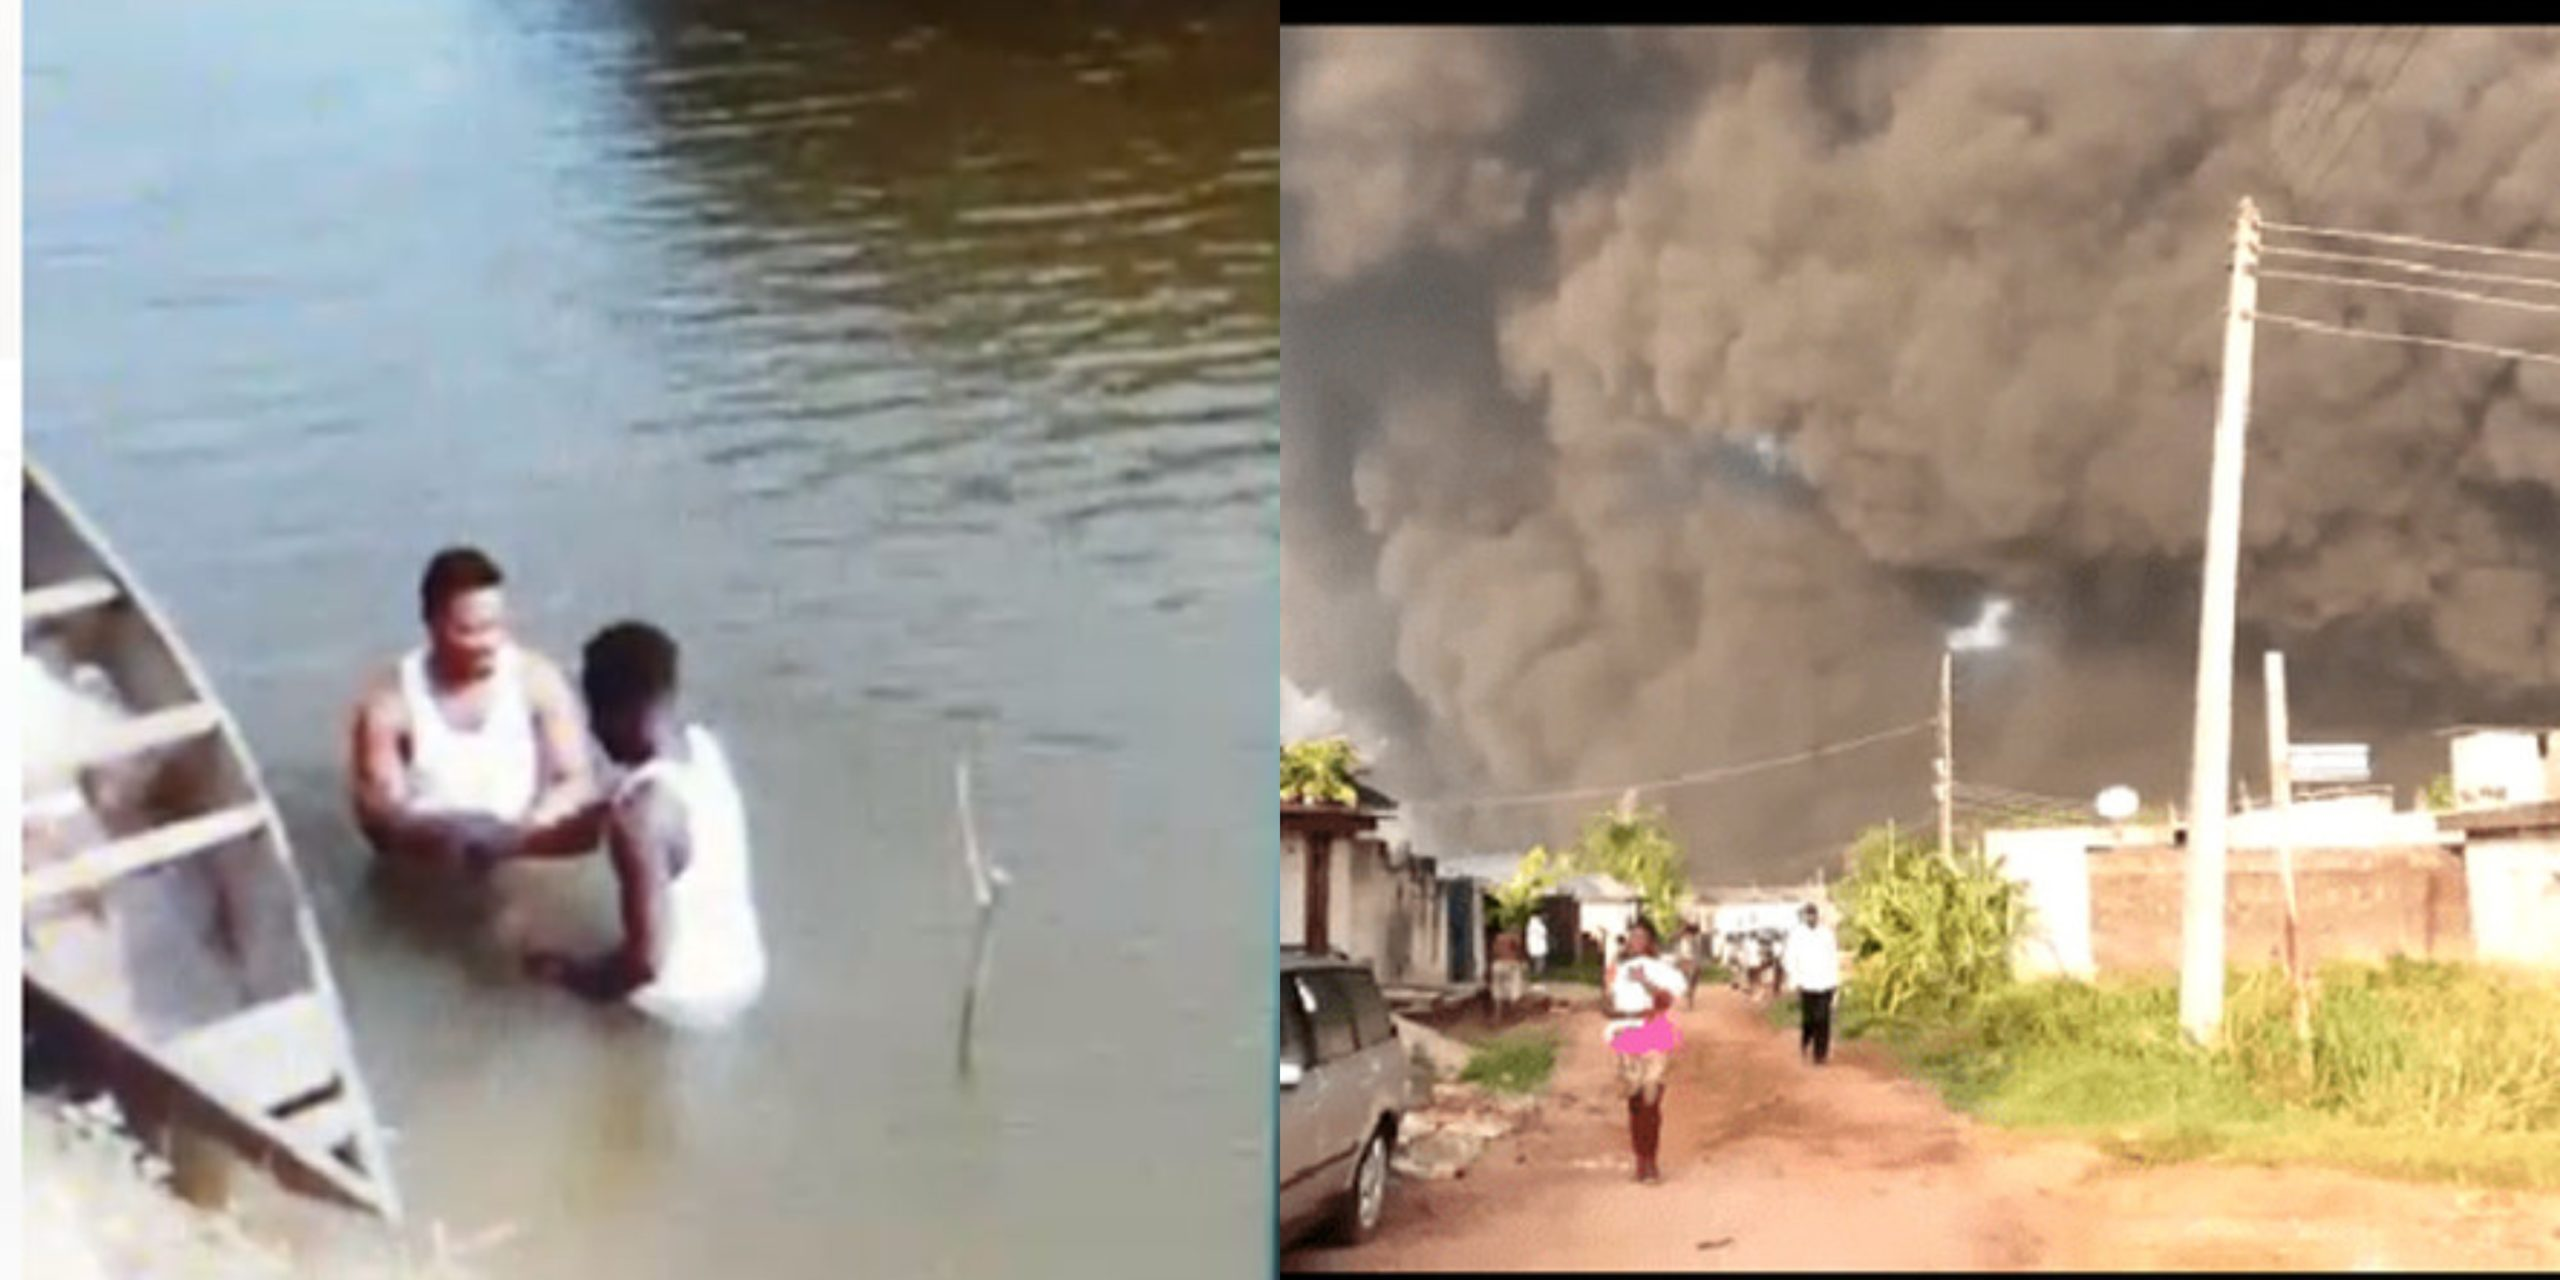 Pastor and church member, doing deliverance reportedly caused the pipeline explosion at Igando